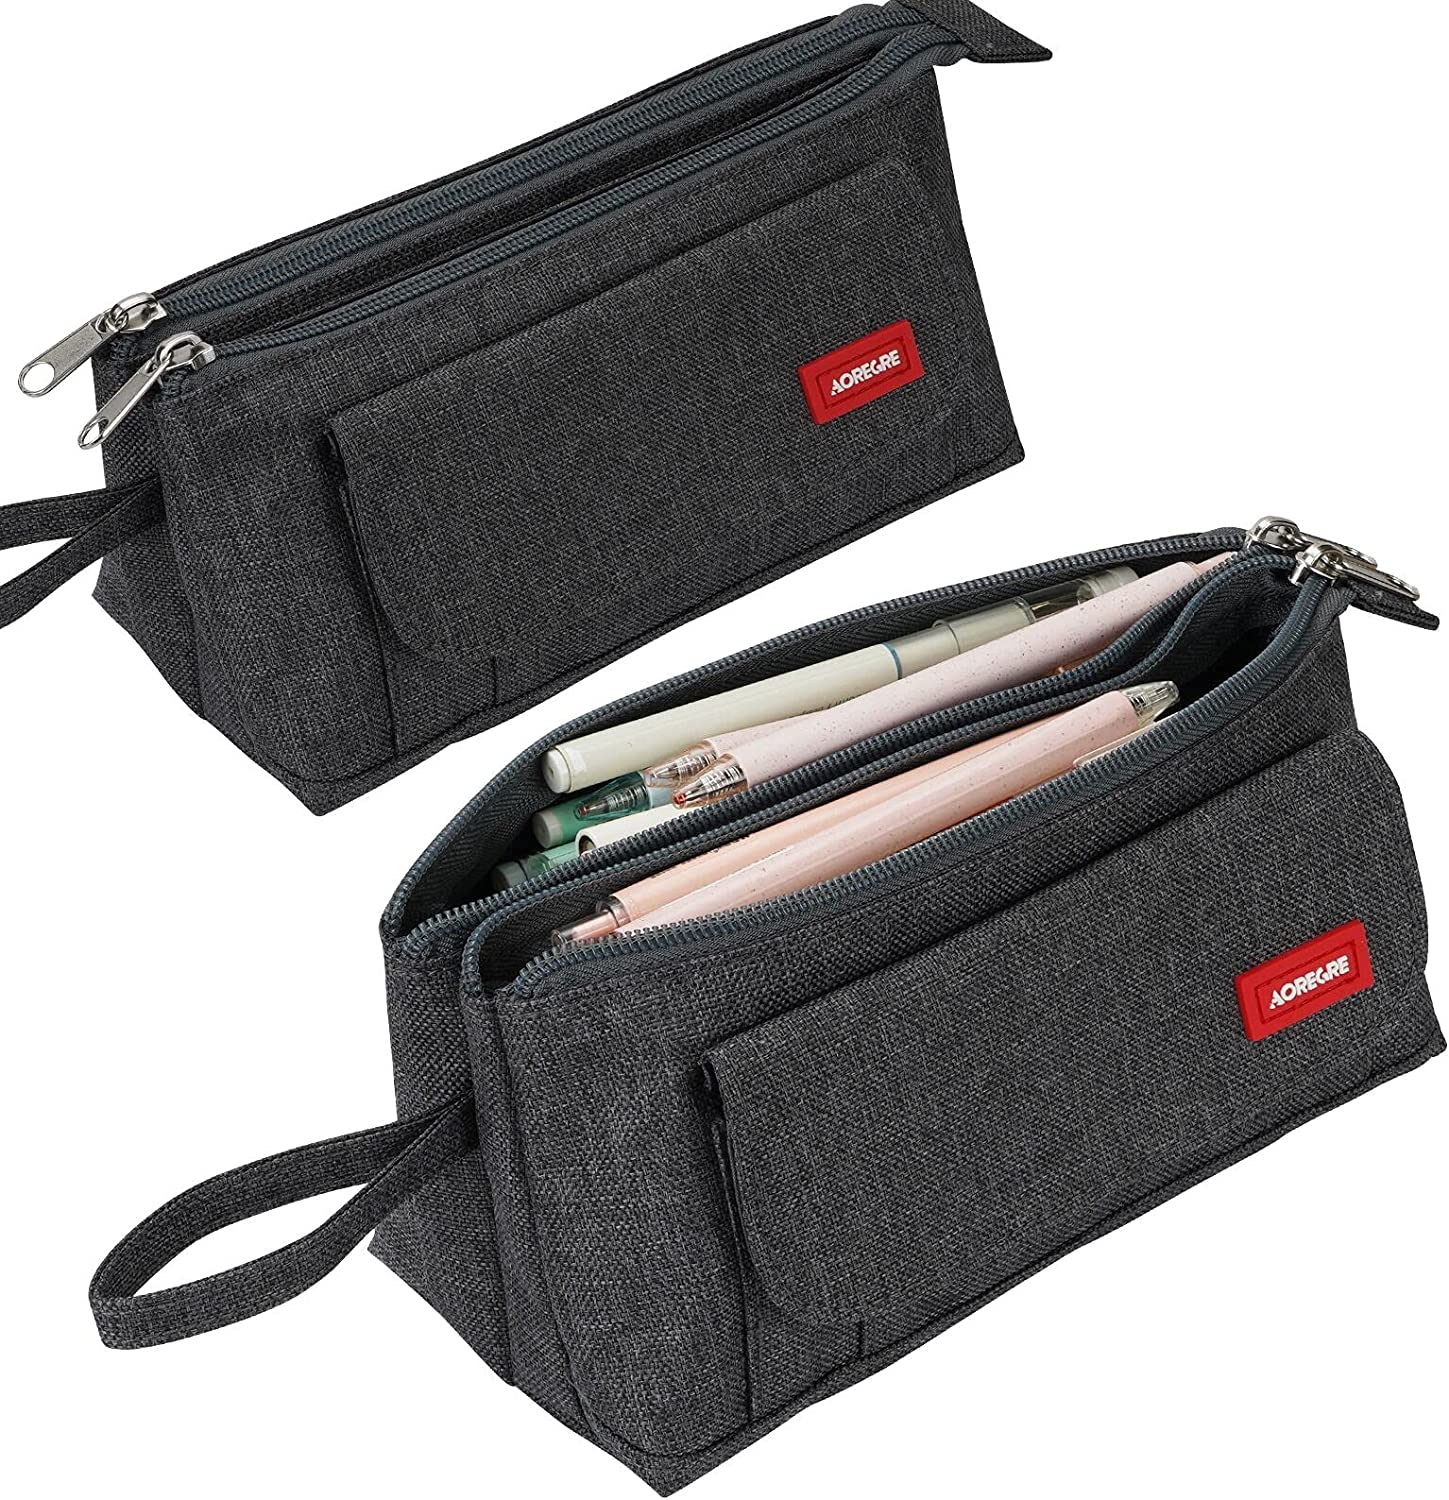 Pencil Case with Two Large Compartments Pocket Big Capacity Pencil Pouch Holder Pen Case Makeup Bag School Supplies Office Stationery Storage Gift for High School Students Girl Boy Adult Teen (Gray)